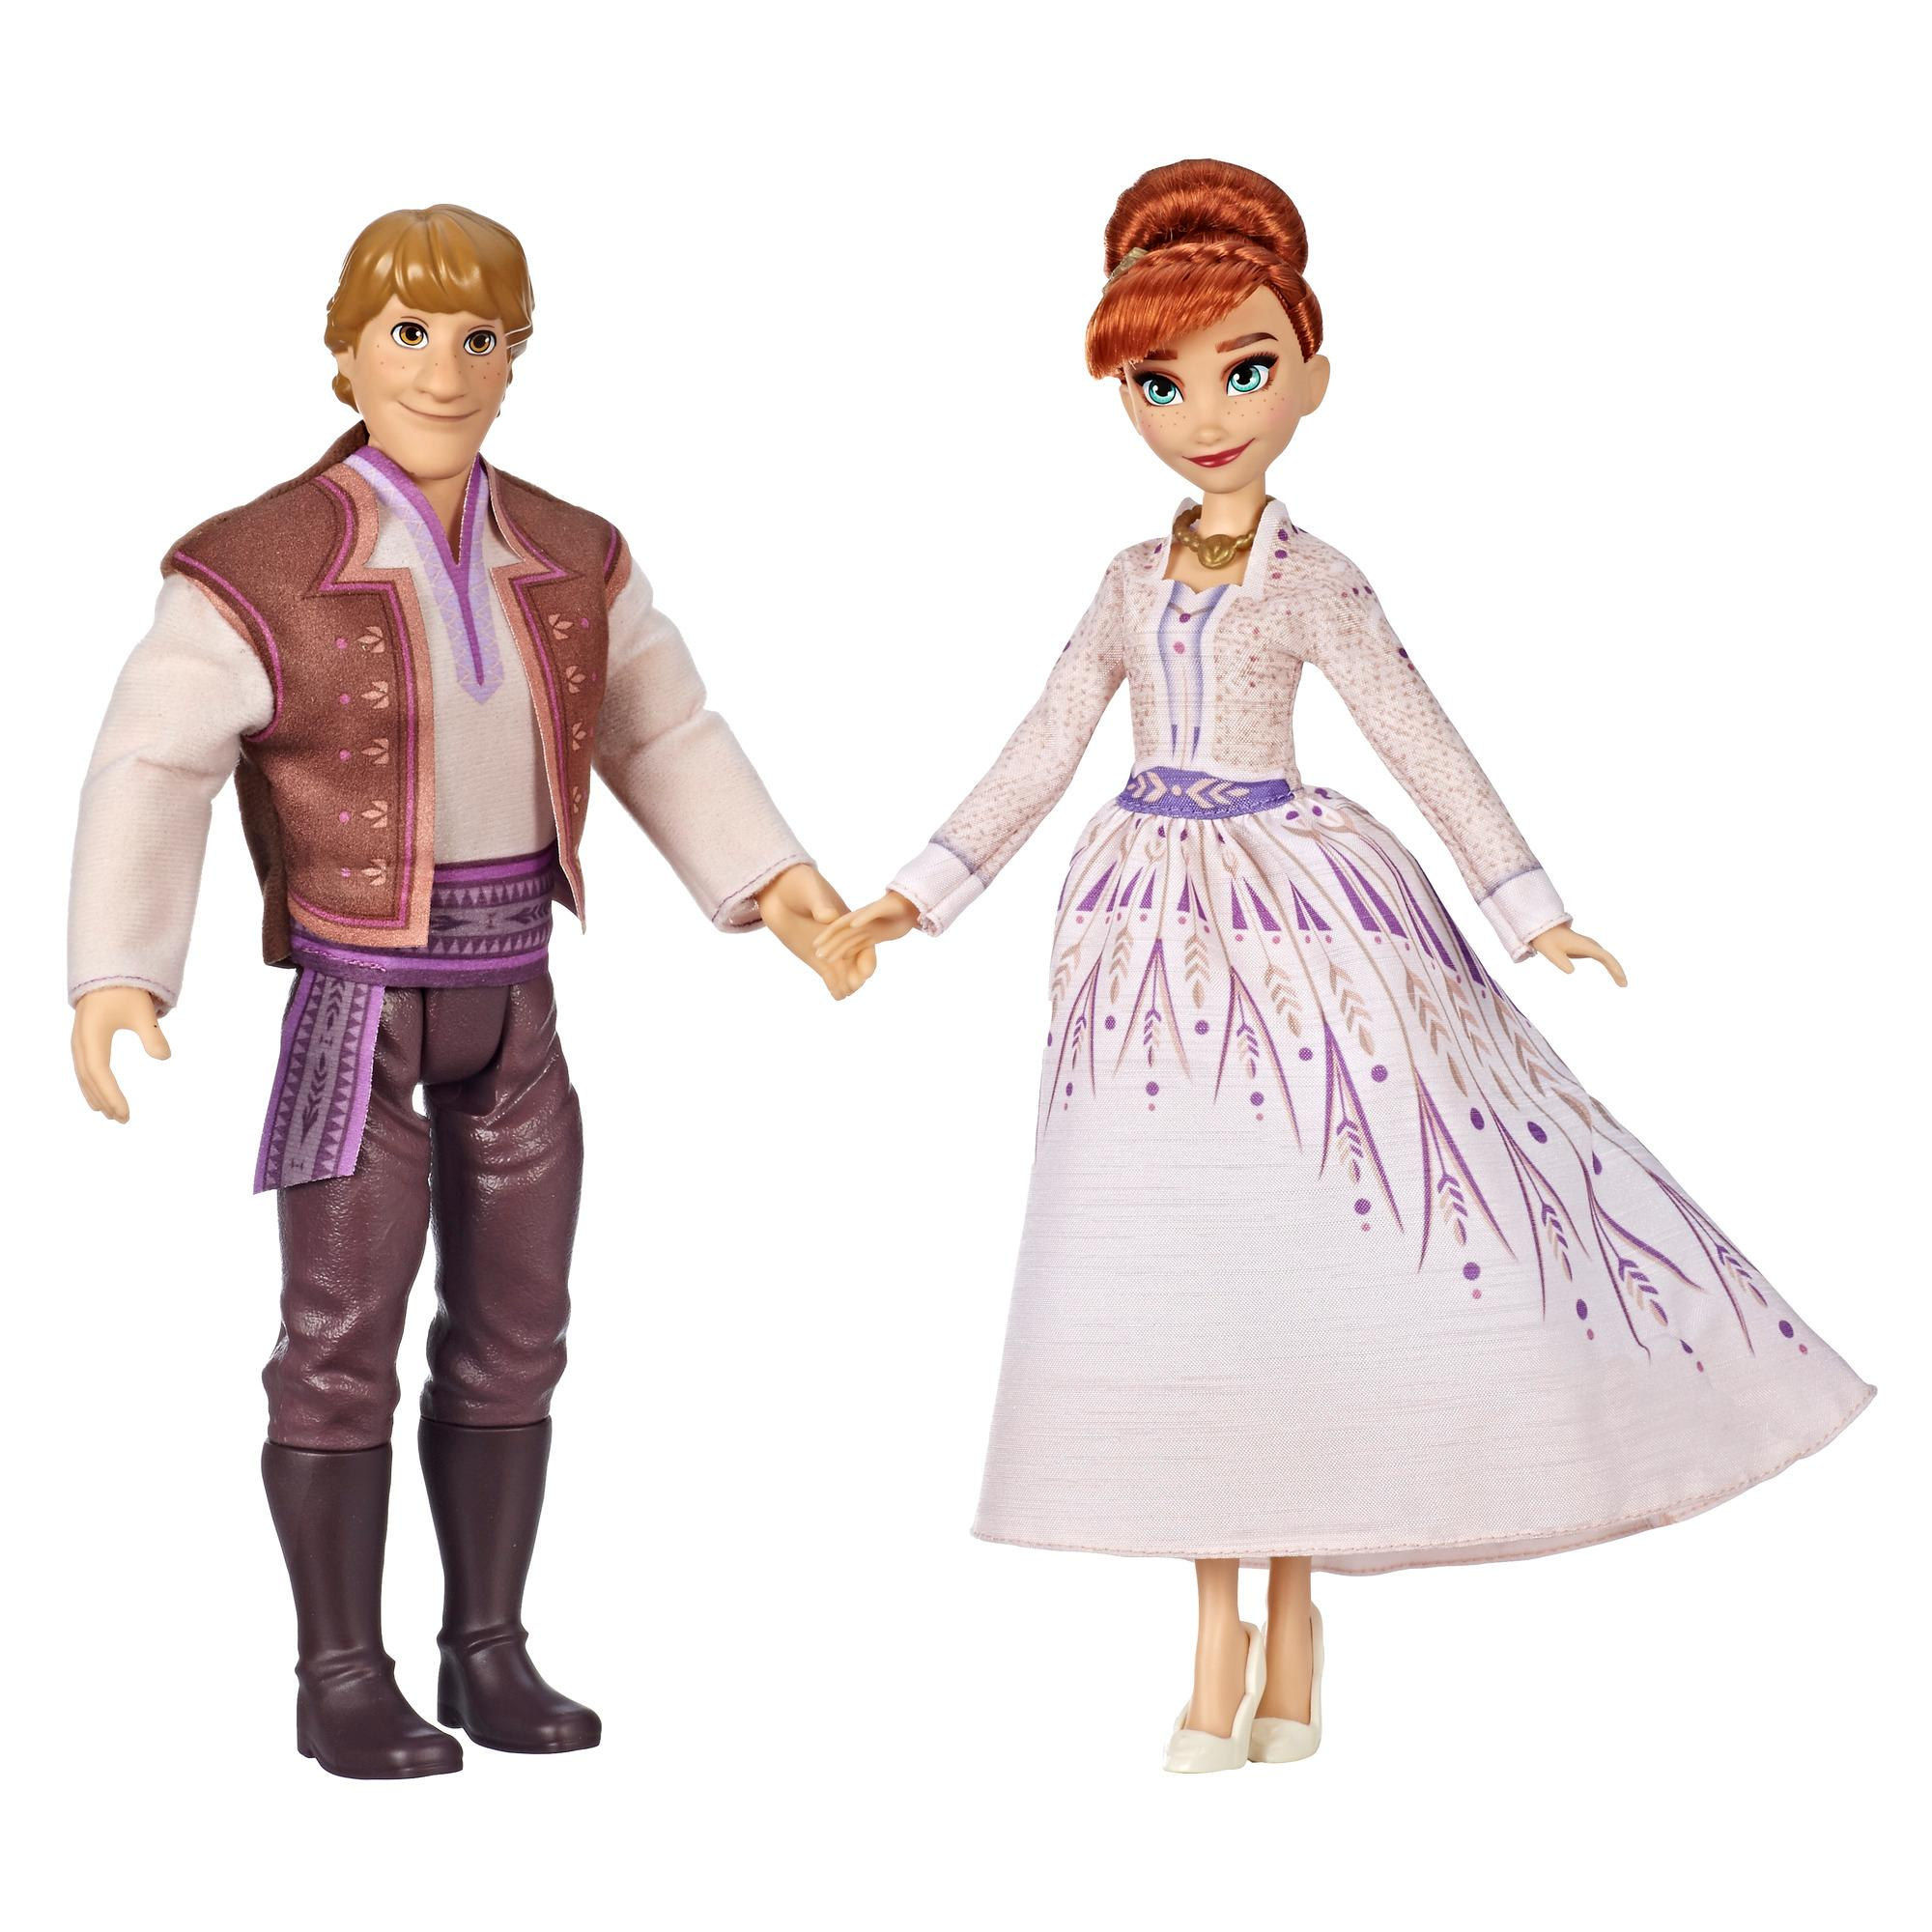 Disney Frozen Anna and Kristoff Fashion Dolls 2-Pack